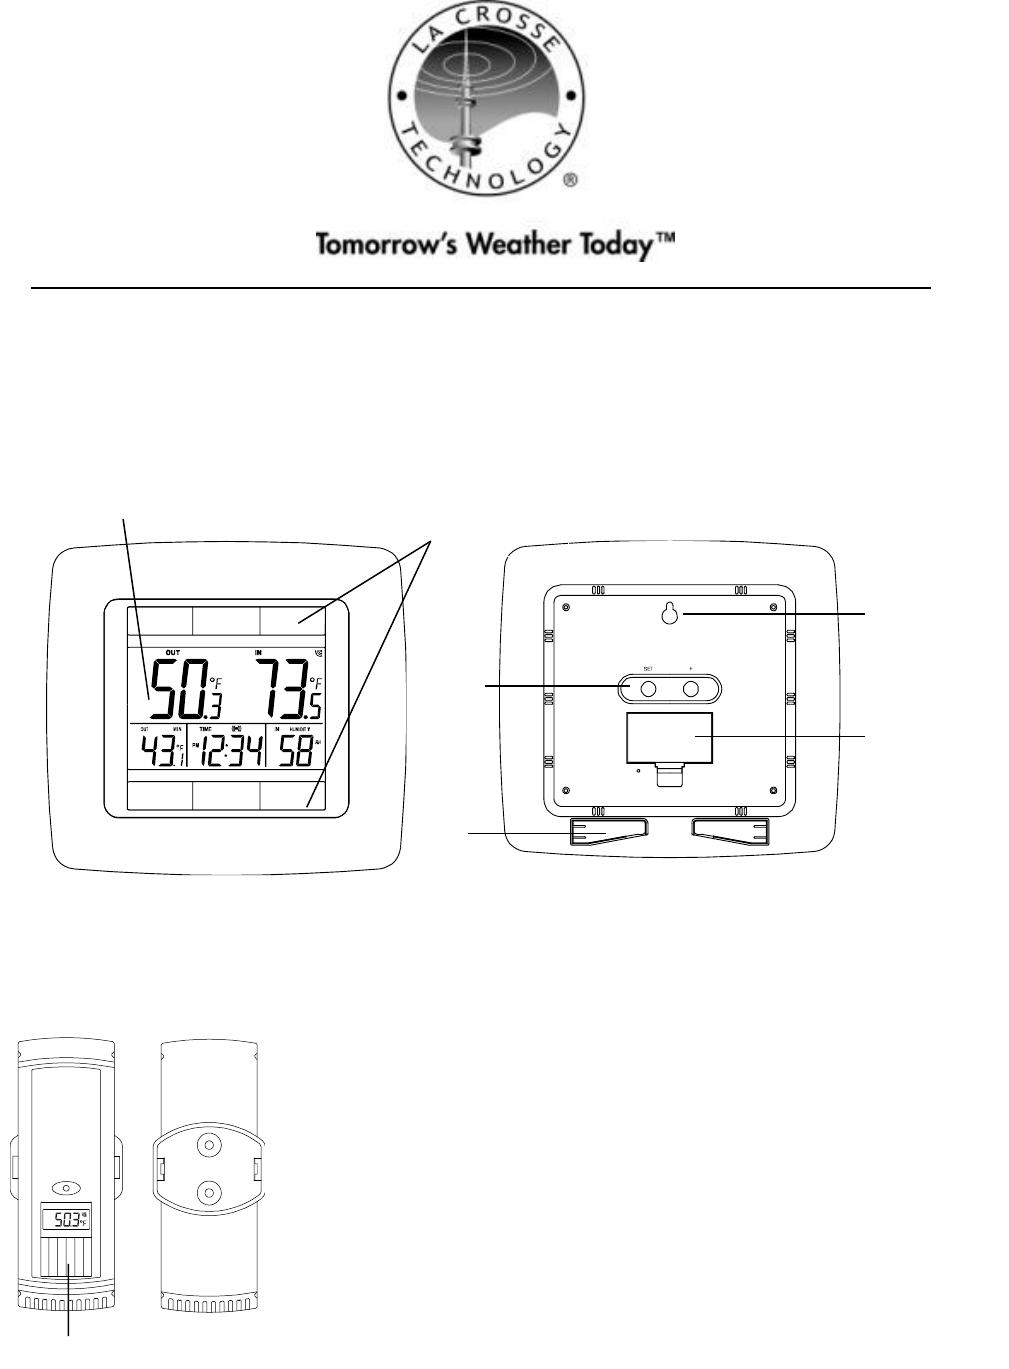 Download La Crosse Technology Weather Radio TX62U-IT